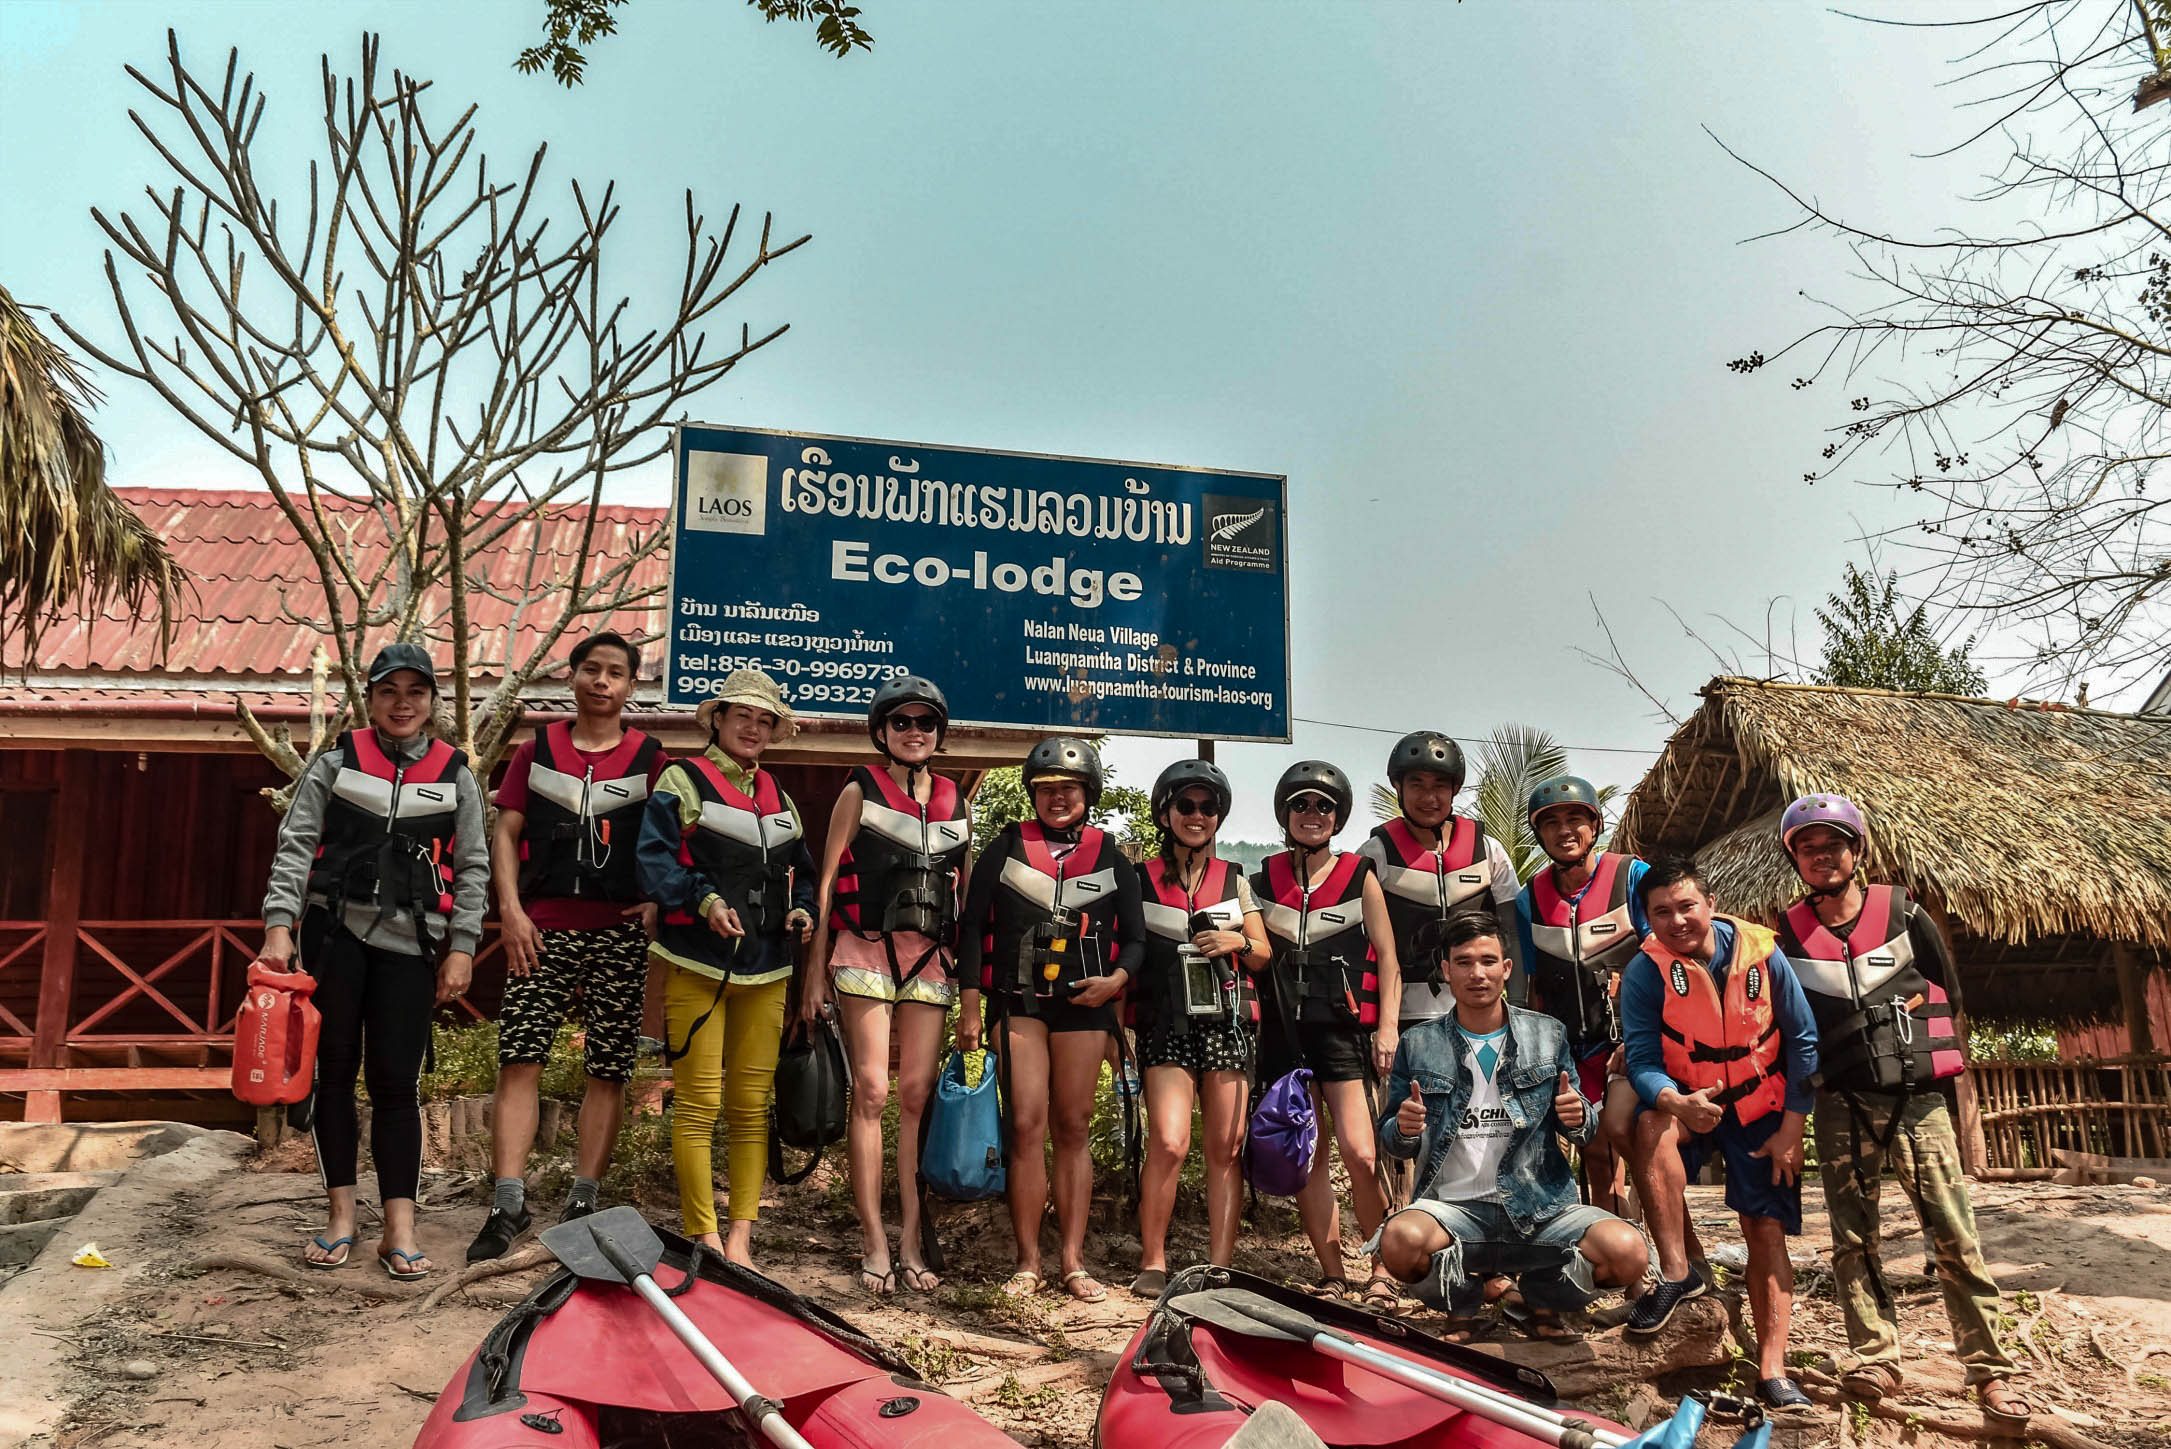 OUR GROUP, AT THE START OF THE KAYAKING JOURNEY